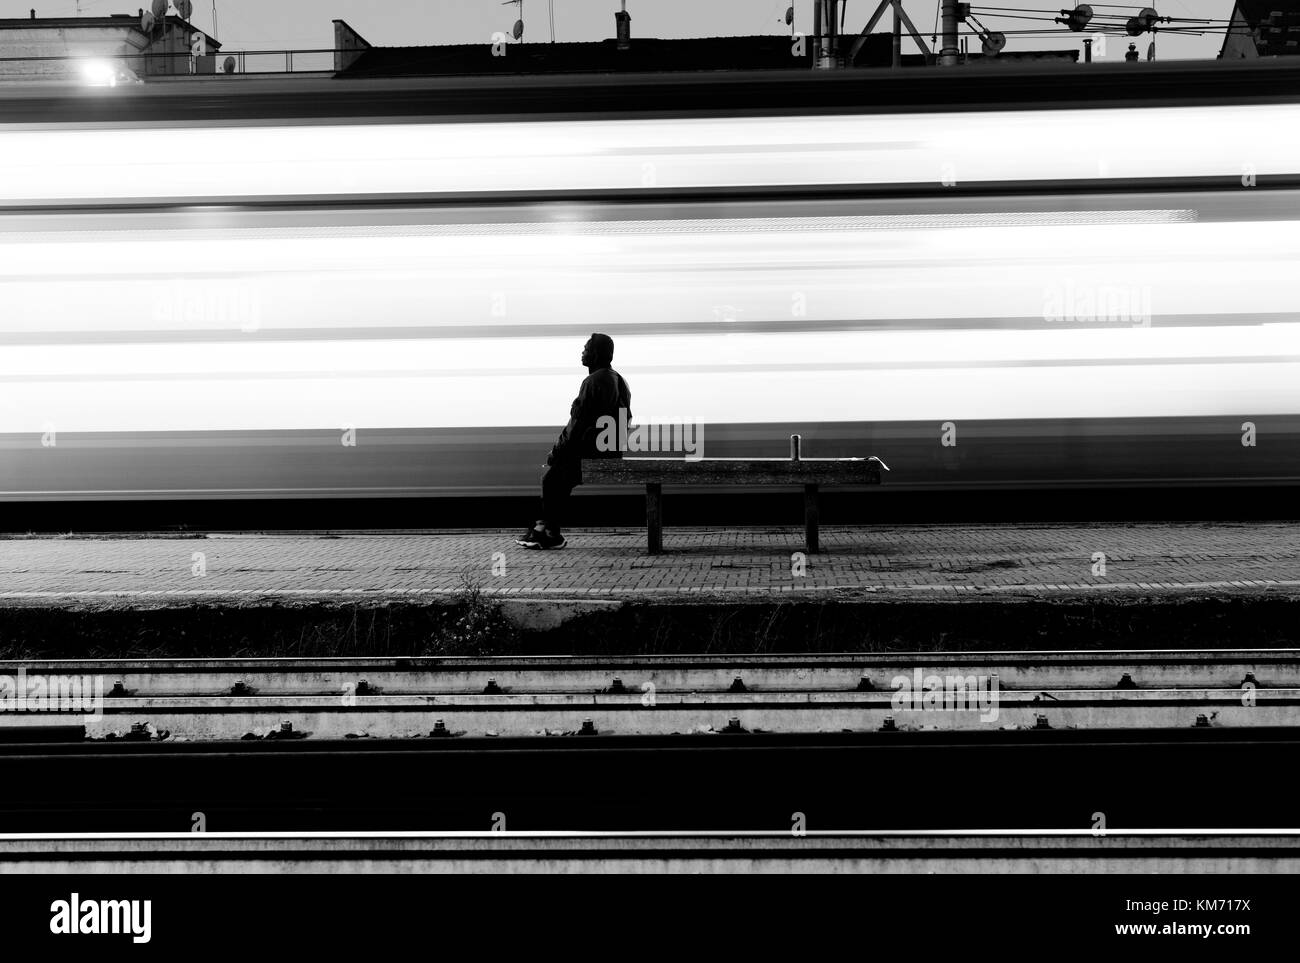 Man near a racing train that leaves trails of light - Stock Image